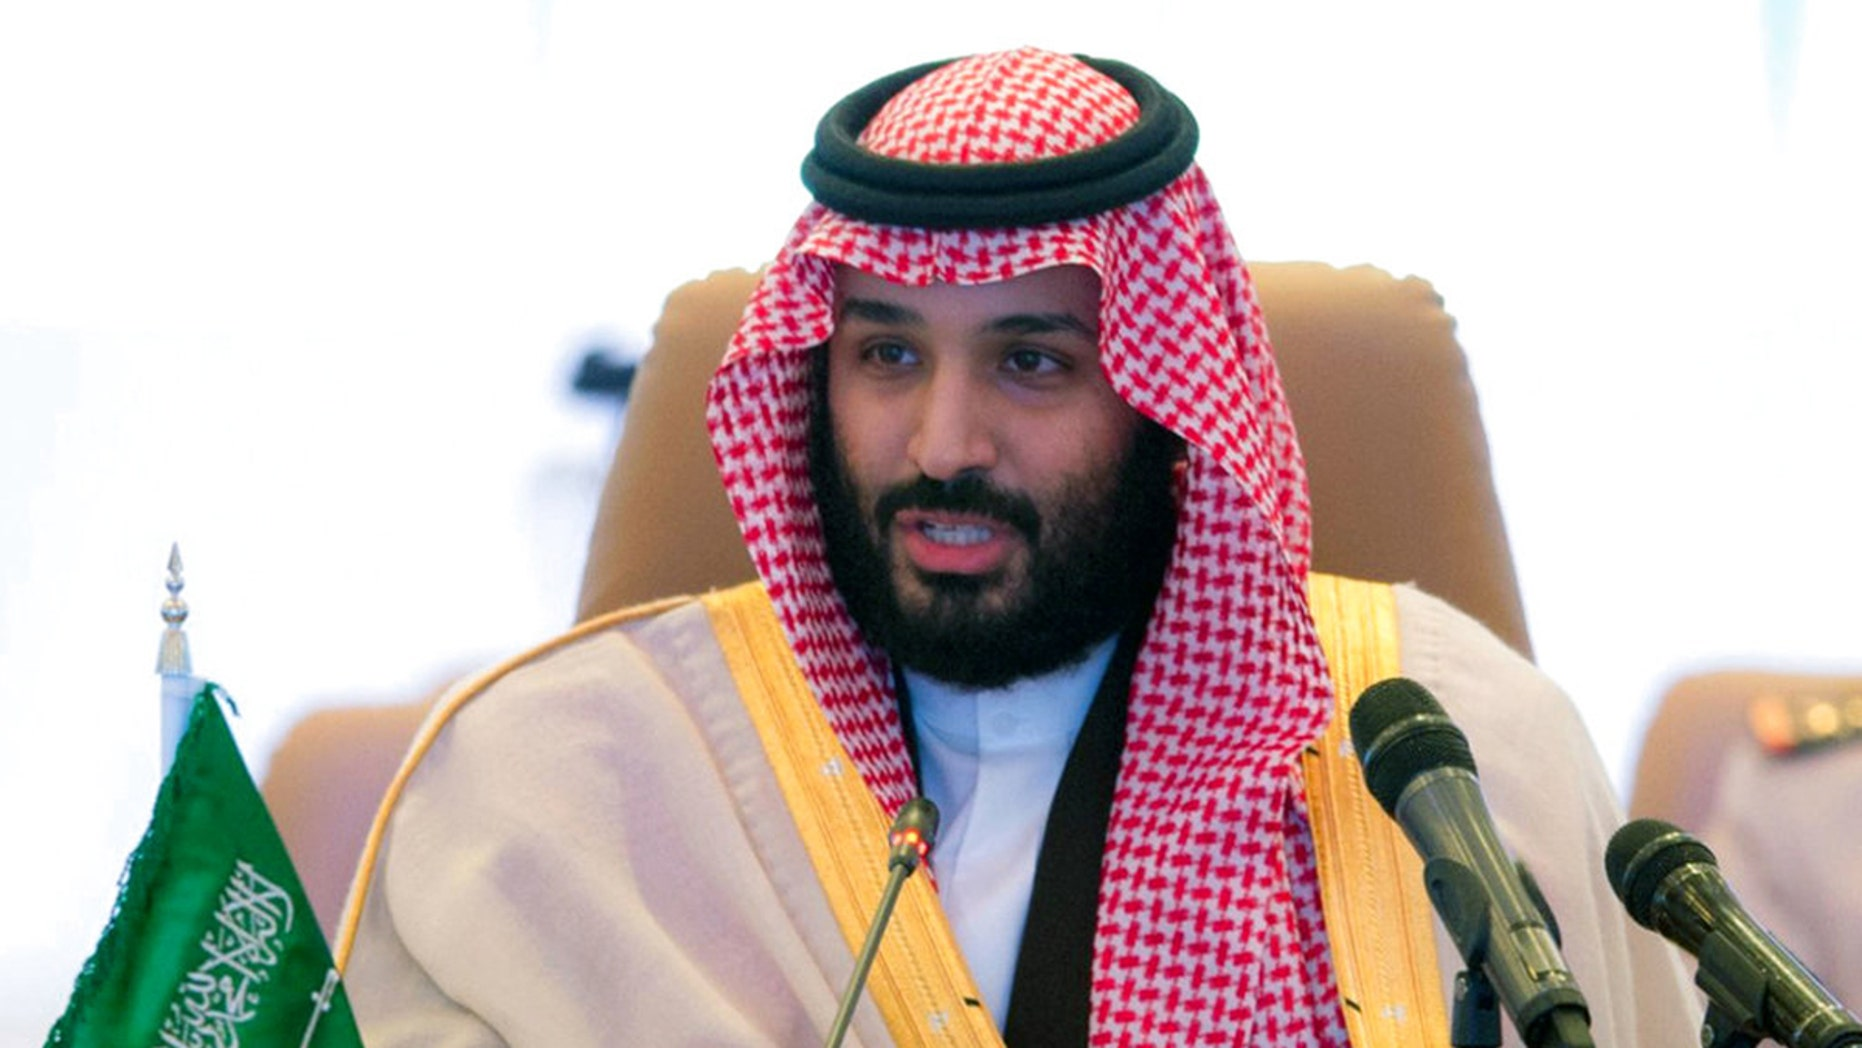 Saudi Crown Prince Mohammed bin Salman has been cracking down on corruption and promoting reforms in the Kingdom.